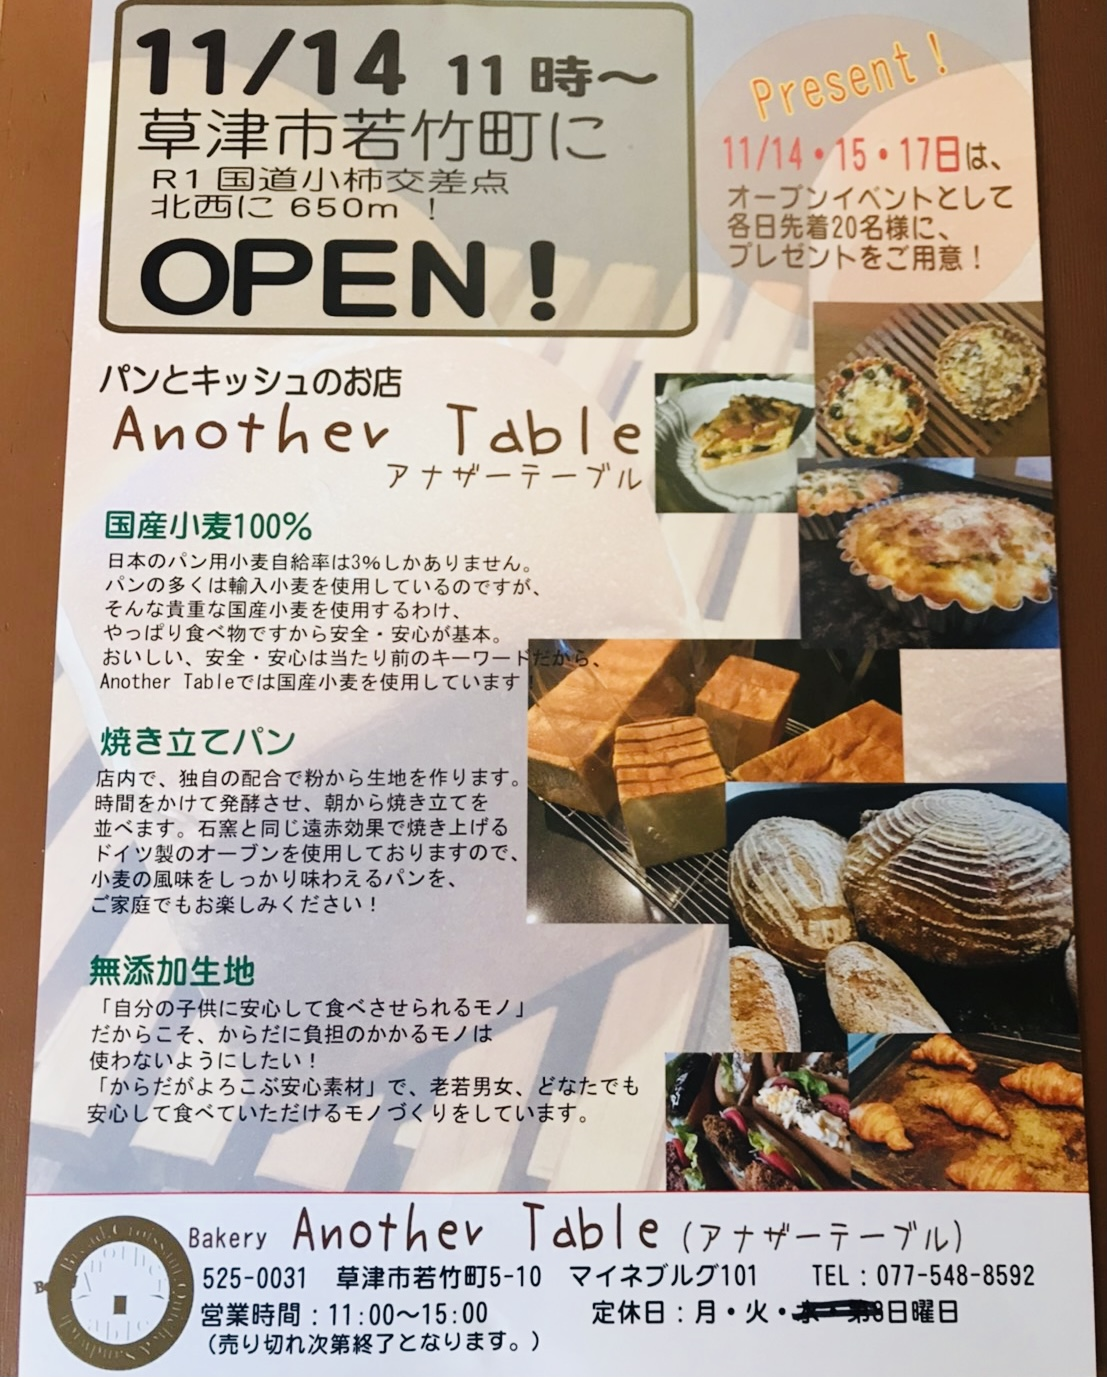 Another open